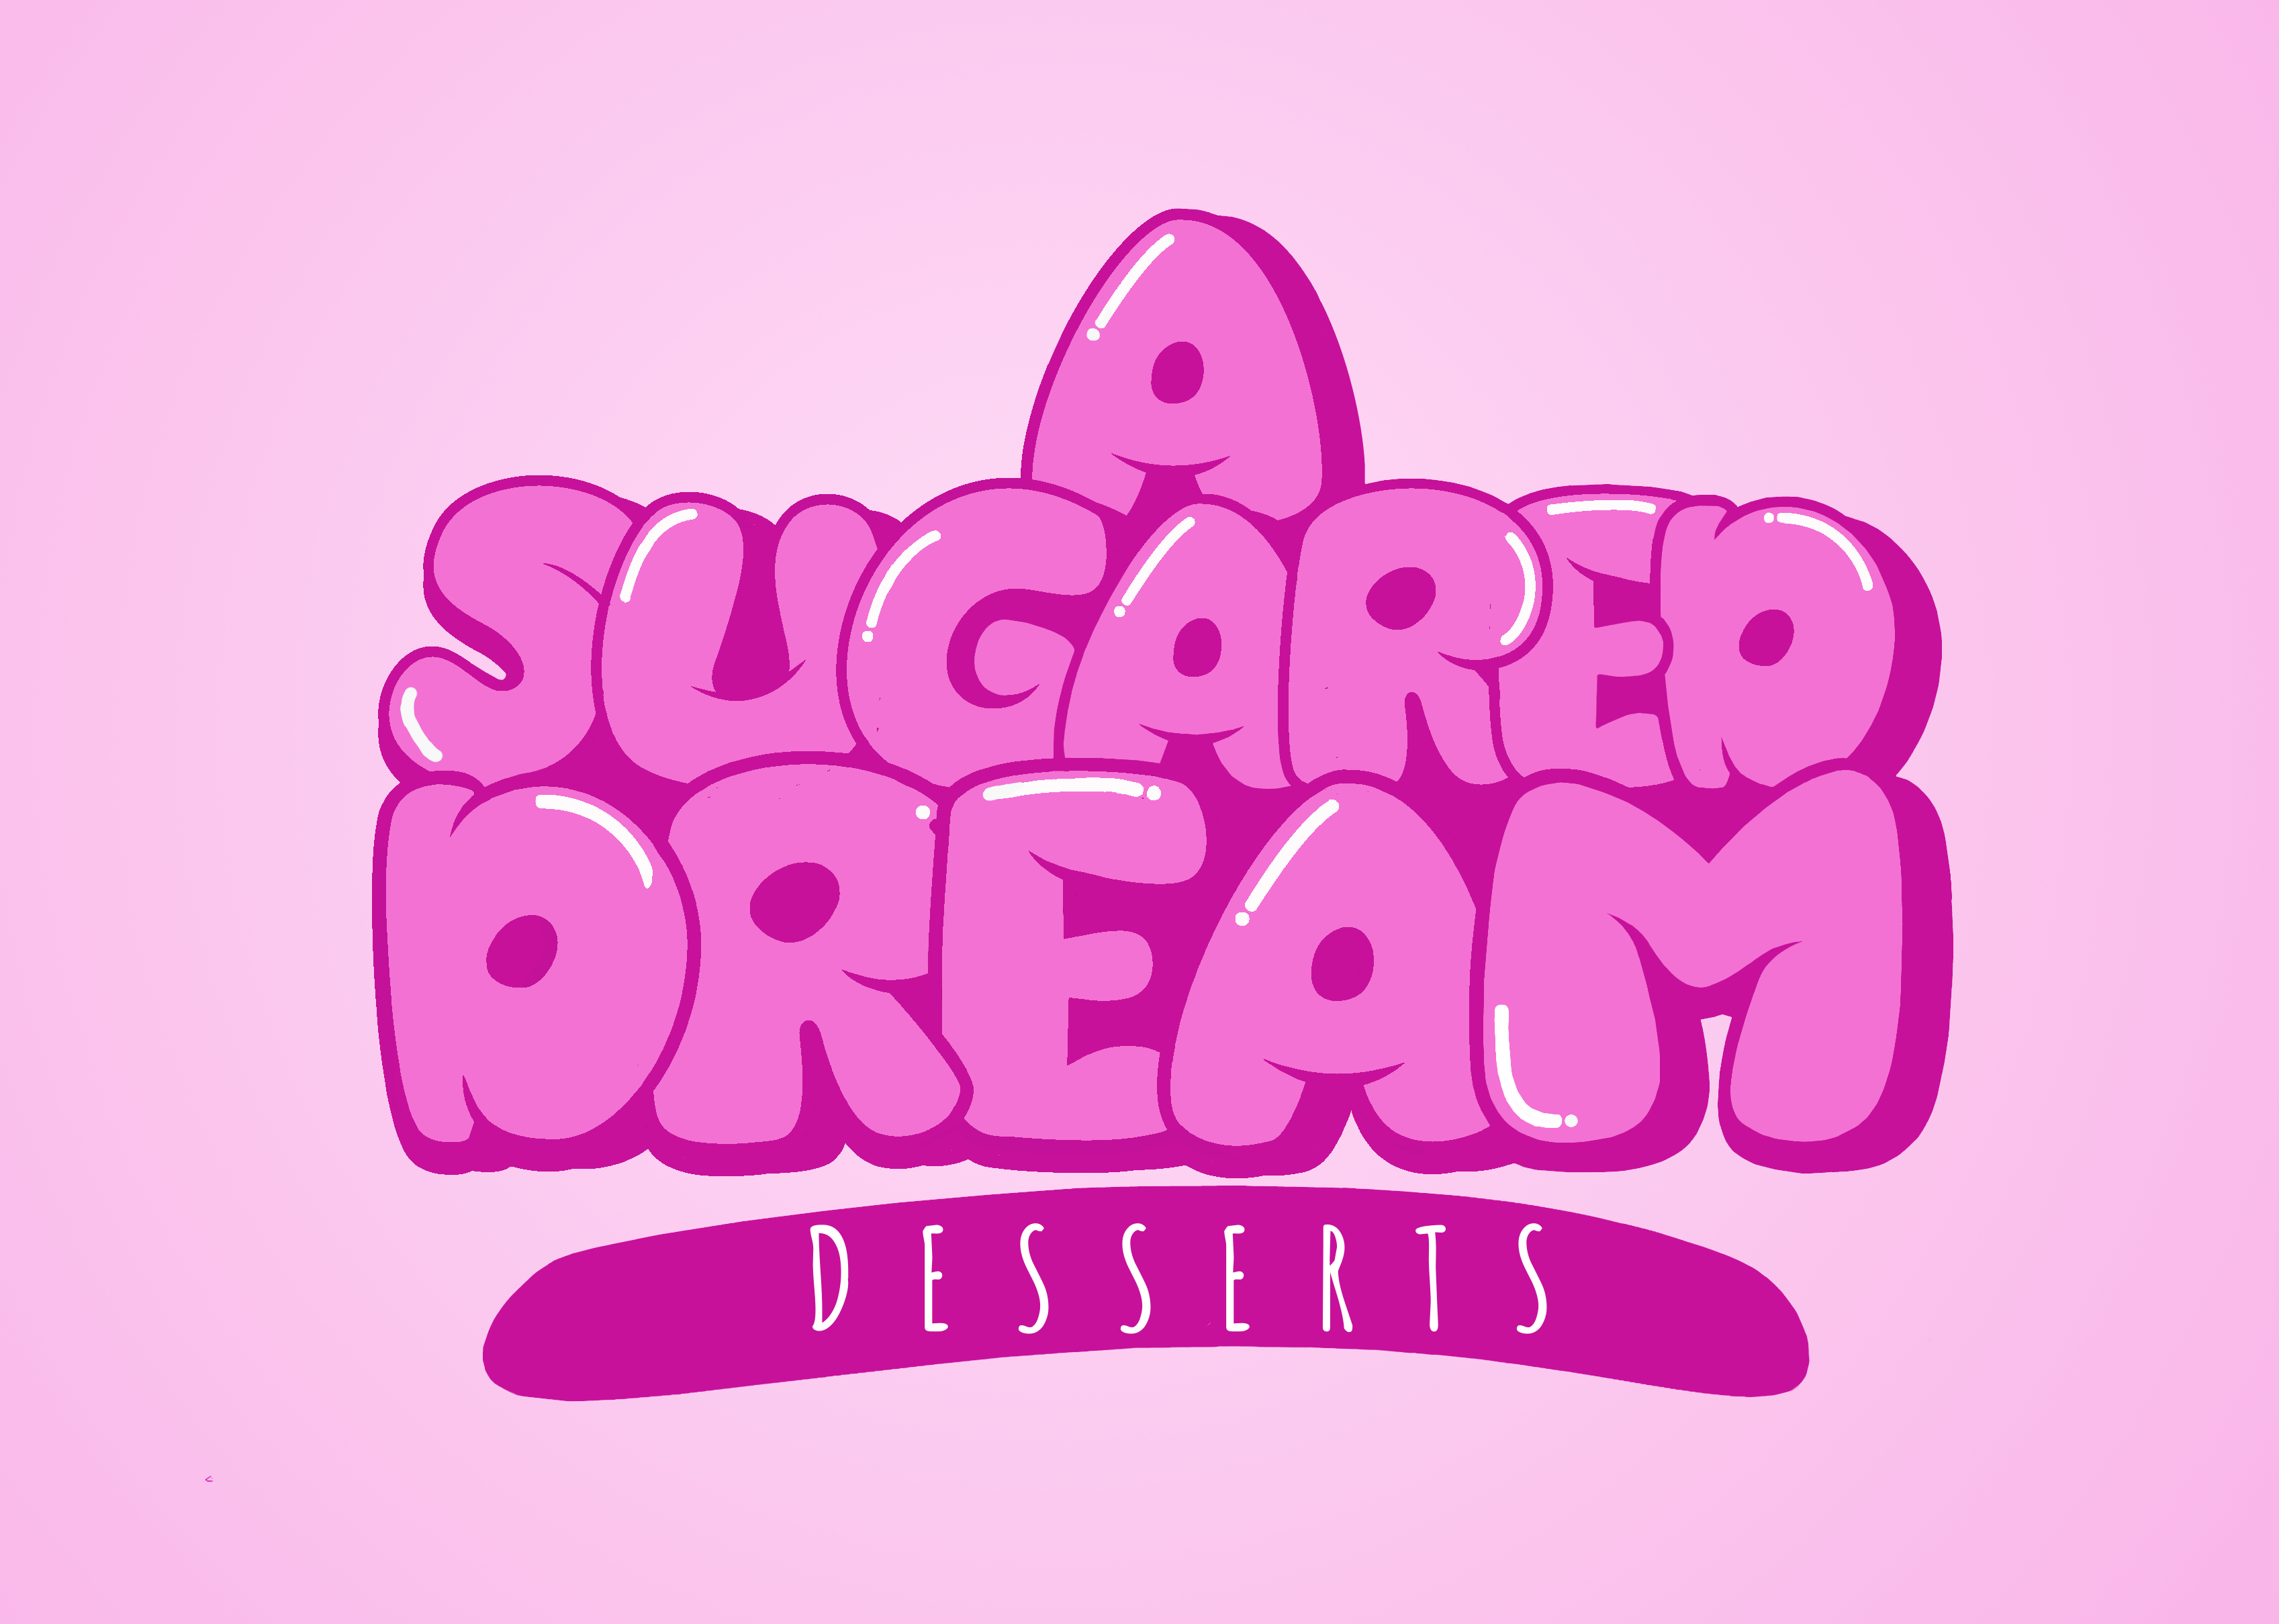 A Sugared Dream2